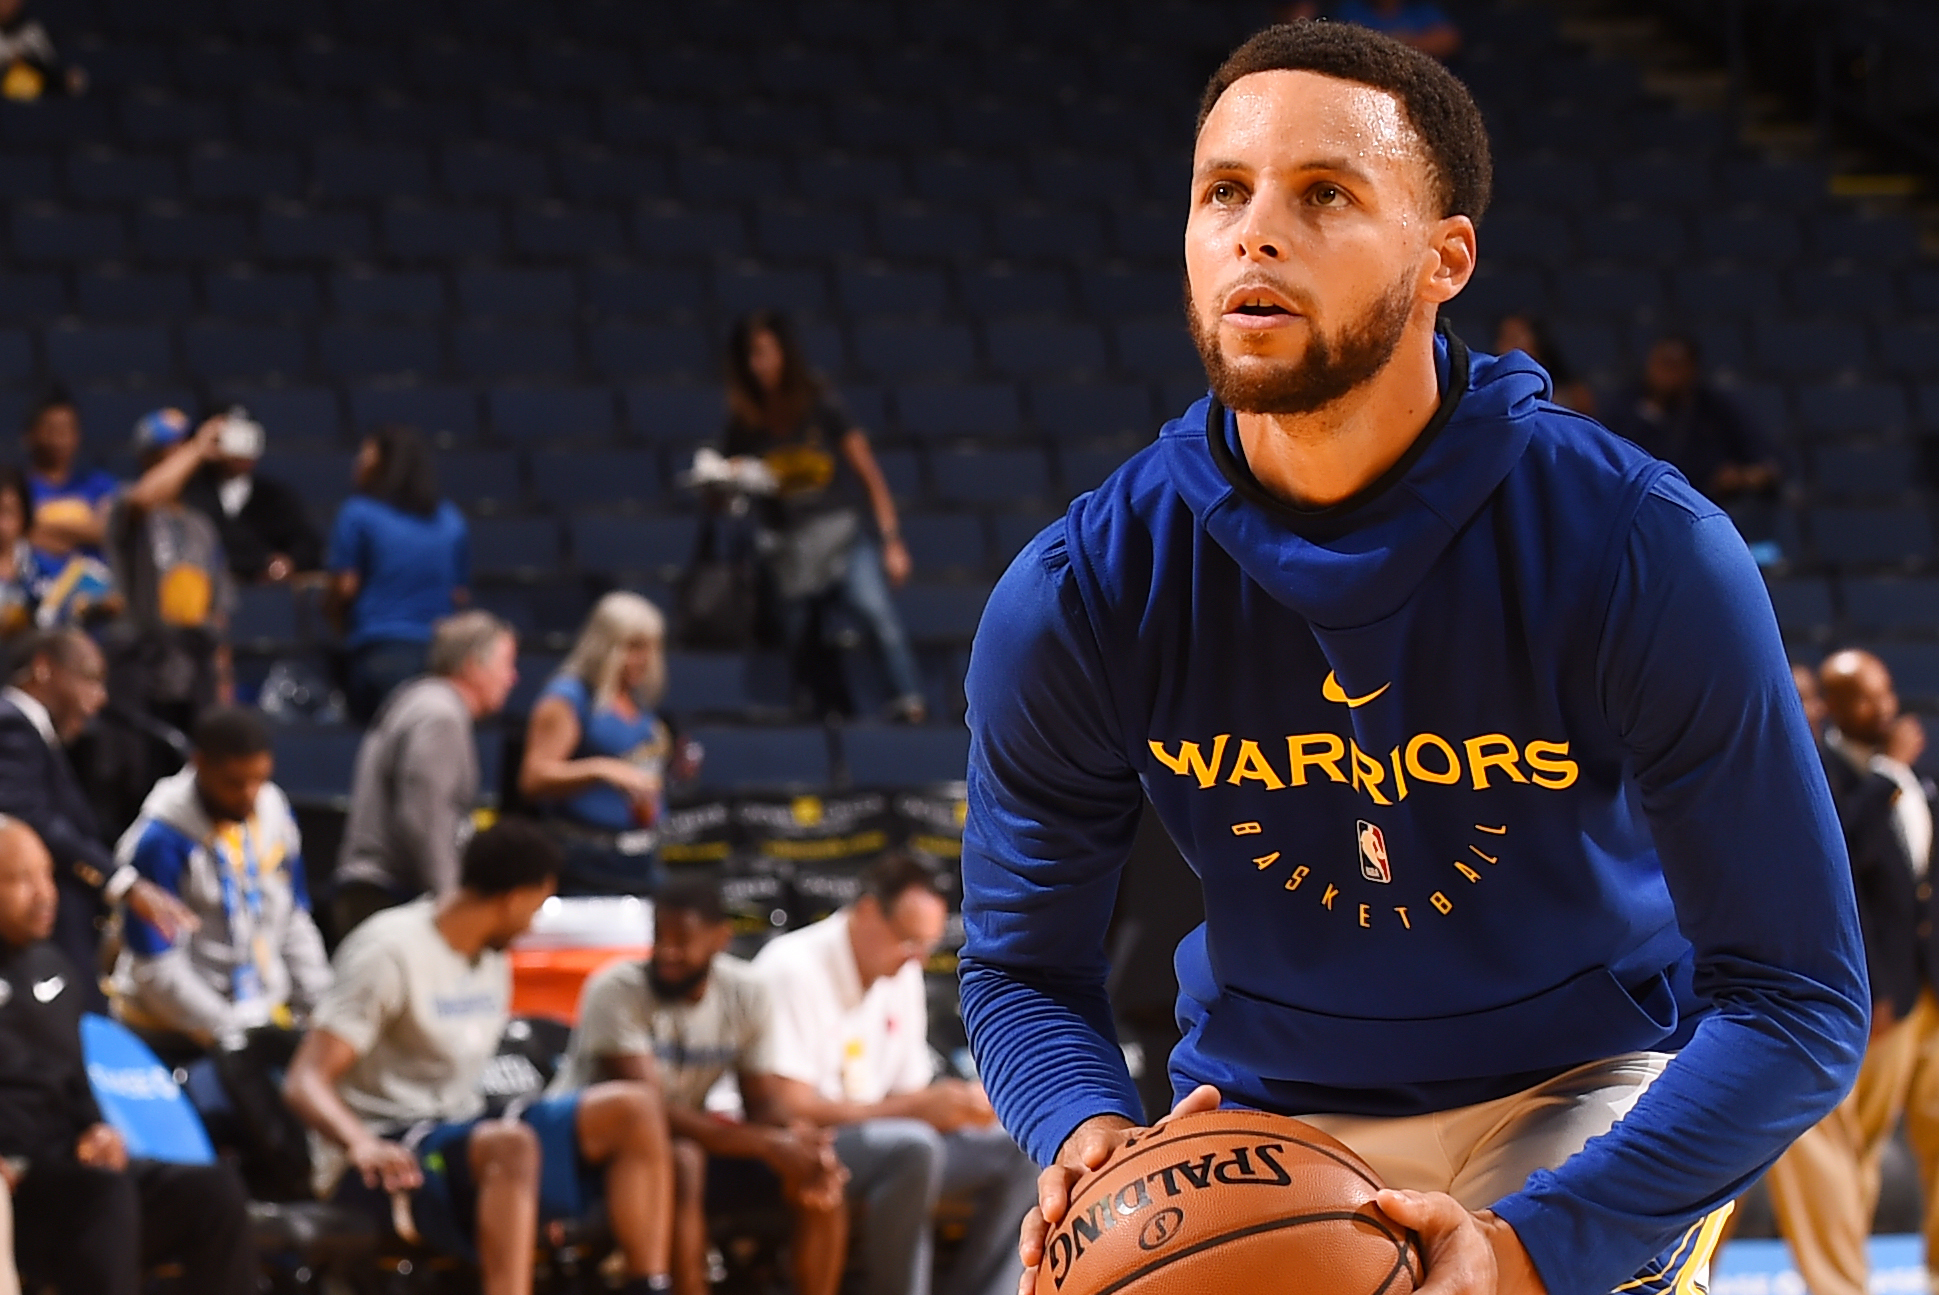 Stephen Curry Hits Wild No Look Half Court Shot During Warriors Practice Bleacher Report Latest News Videos And Highlights